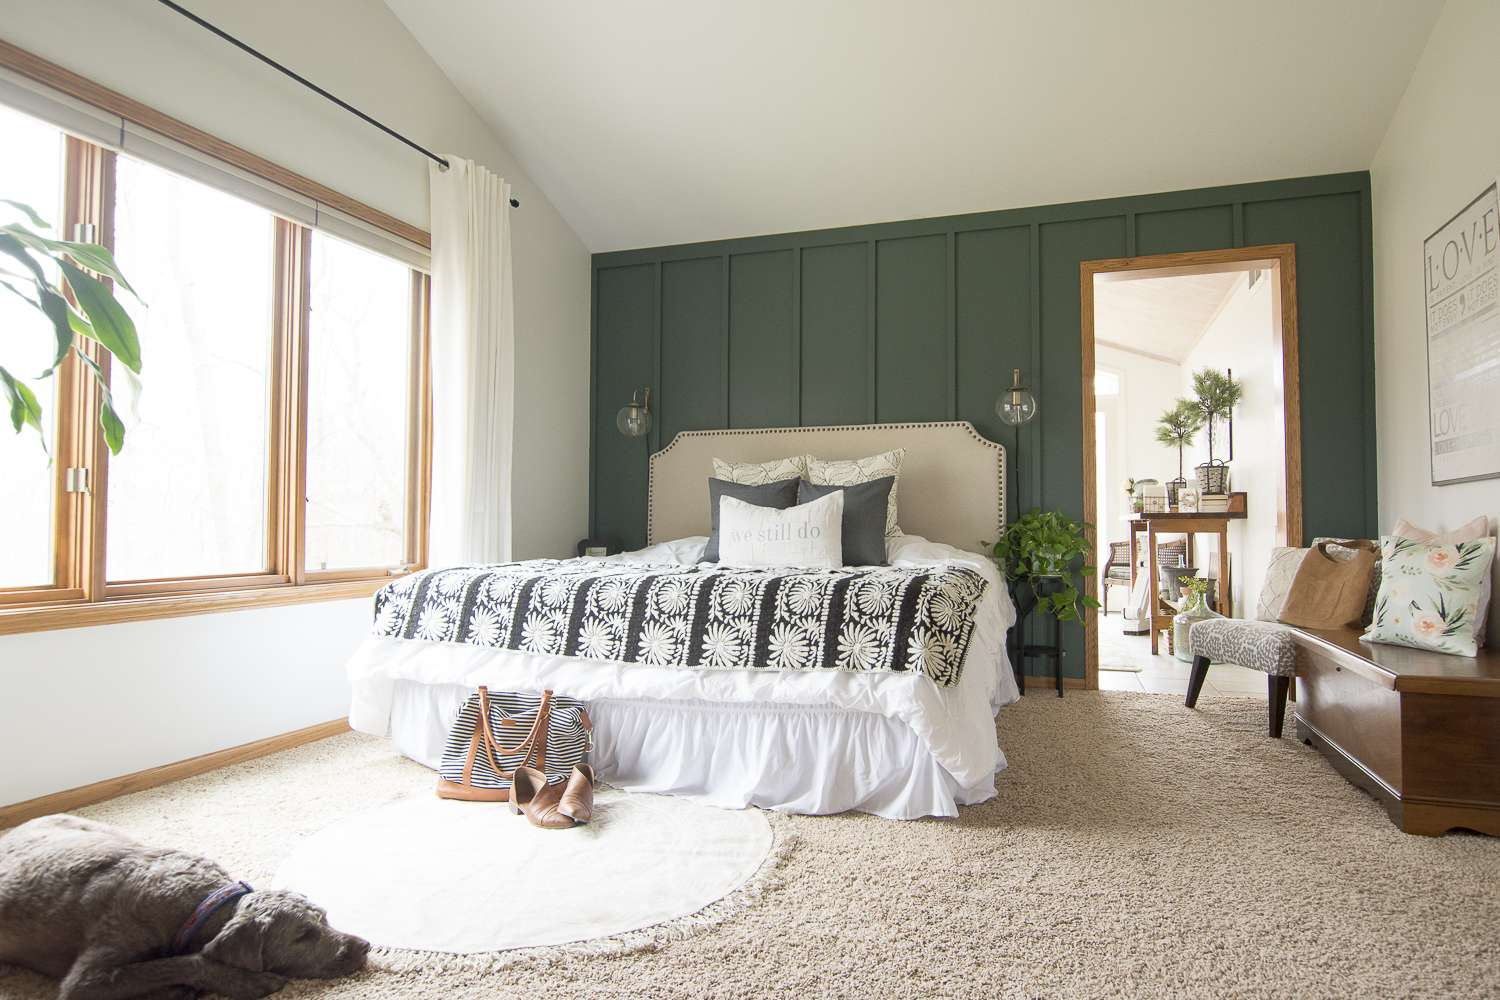 A master bedroom needs to have a few finishing touches to make it a cozy retreat! Today I'm showcasing how just a few additions can turn a bland bedroom into an oasis with modern farmhouse bedroom decor. Head to the blog to read more!